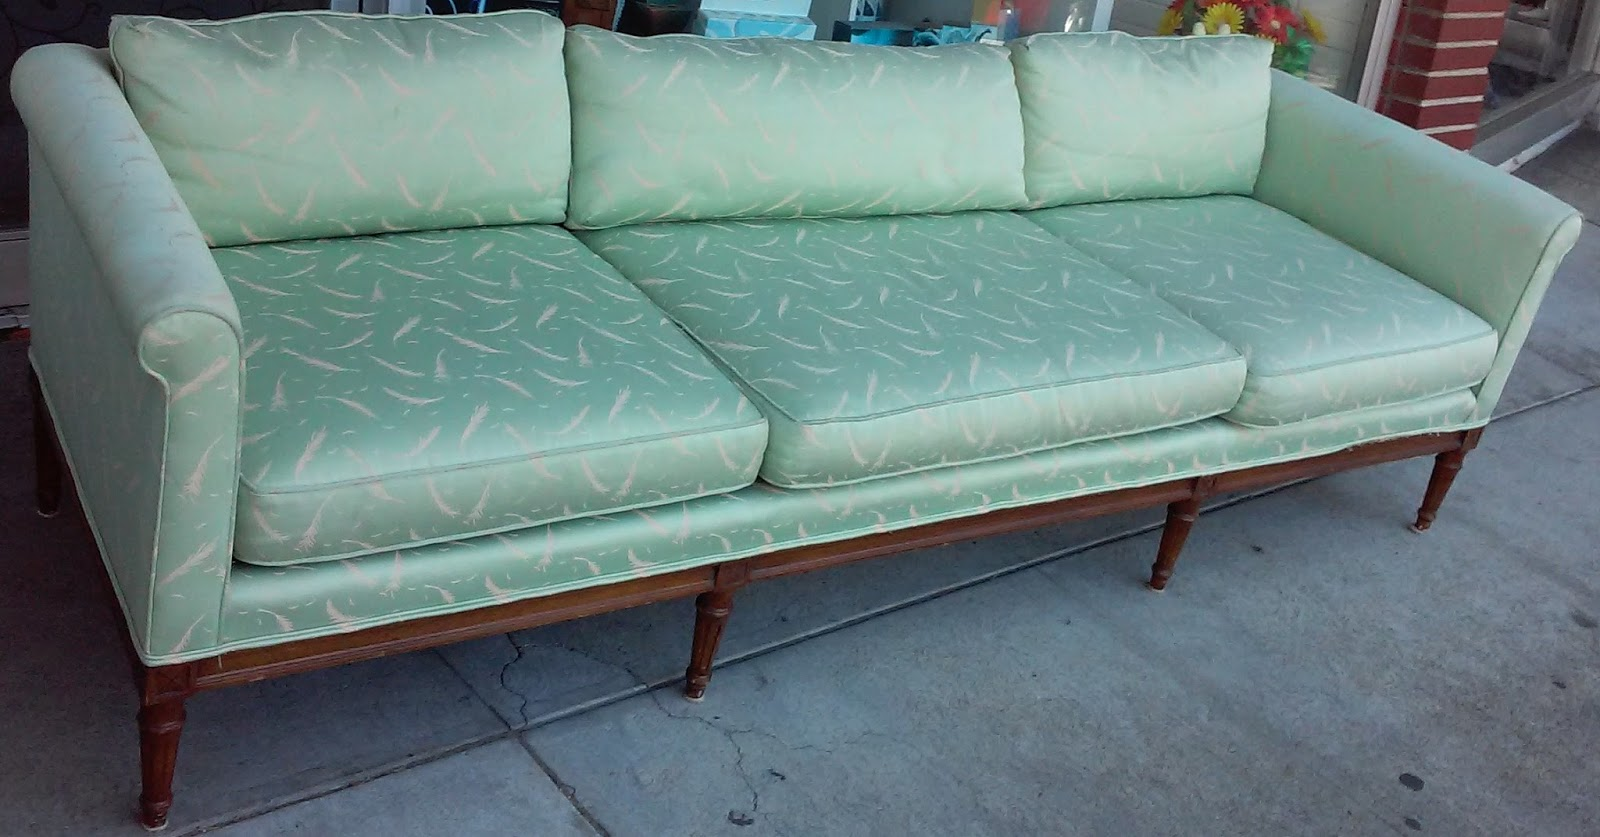 sold reduced henredon custom made vintage sofa 125